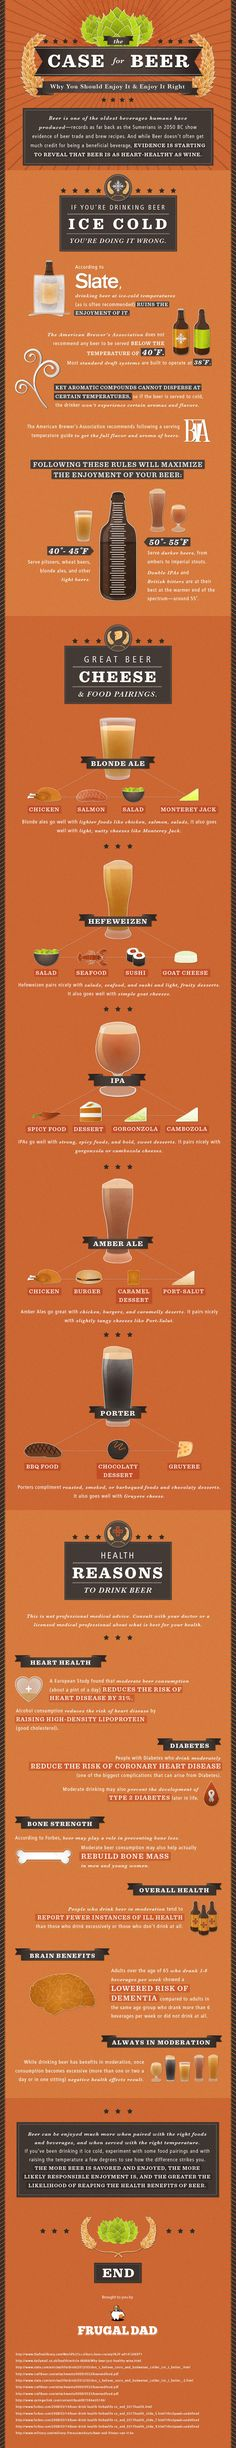 The Case for Beer